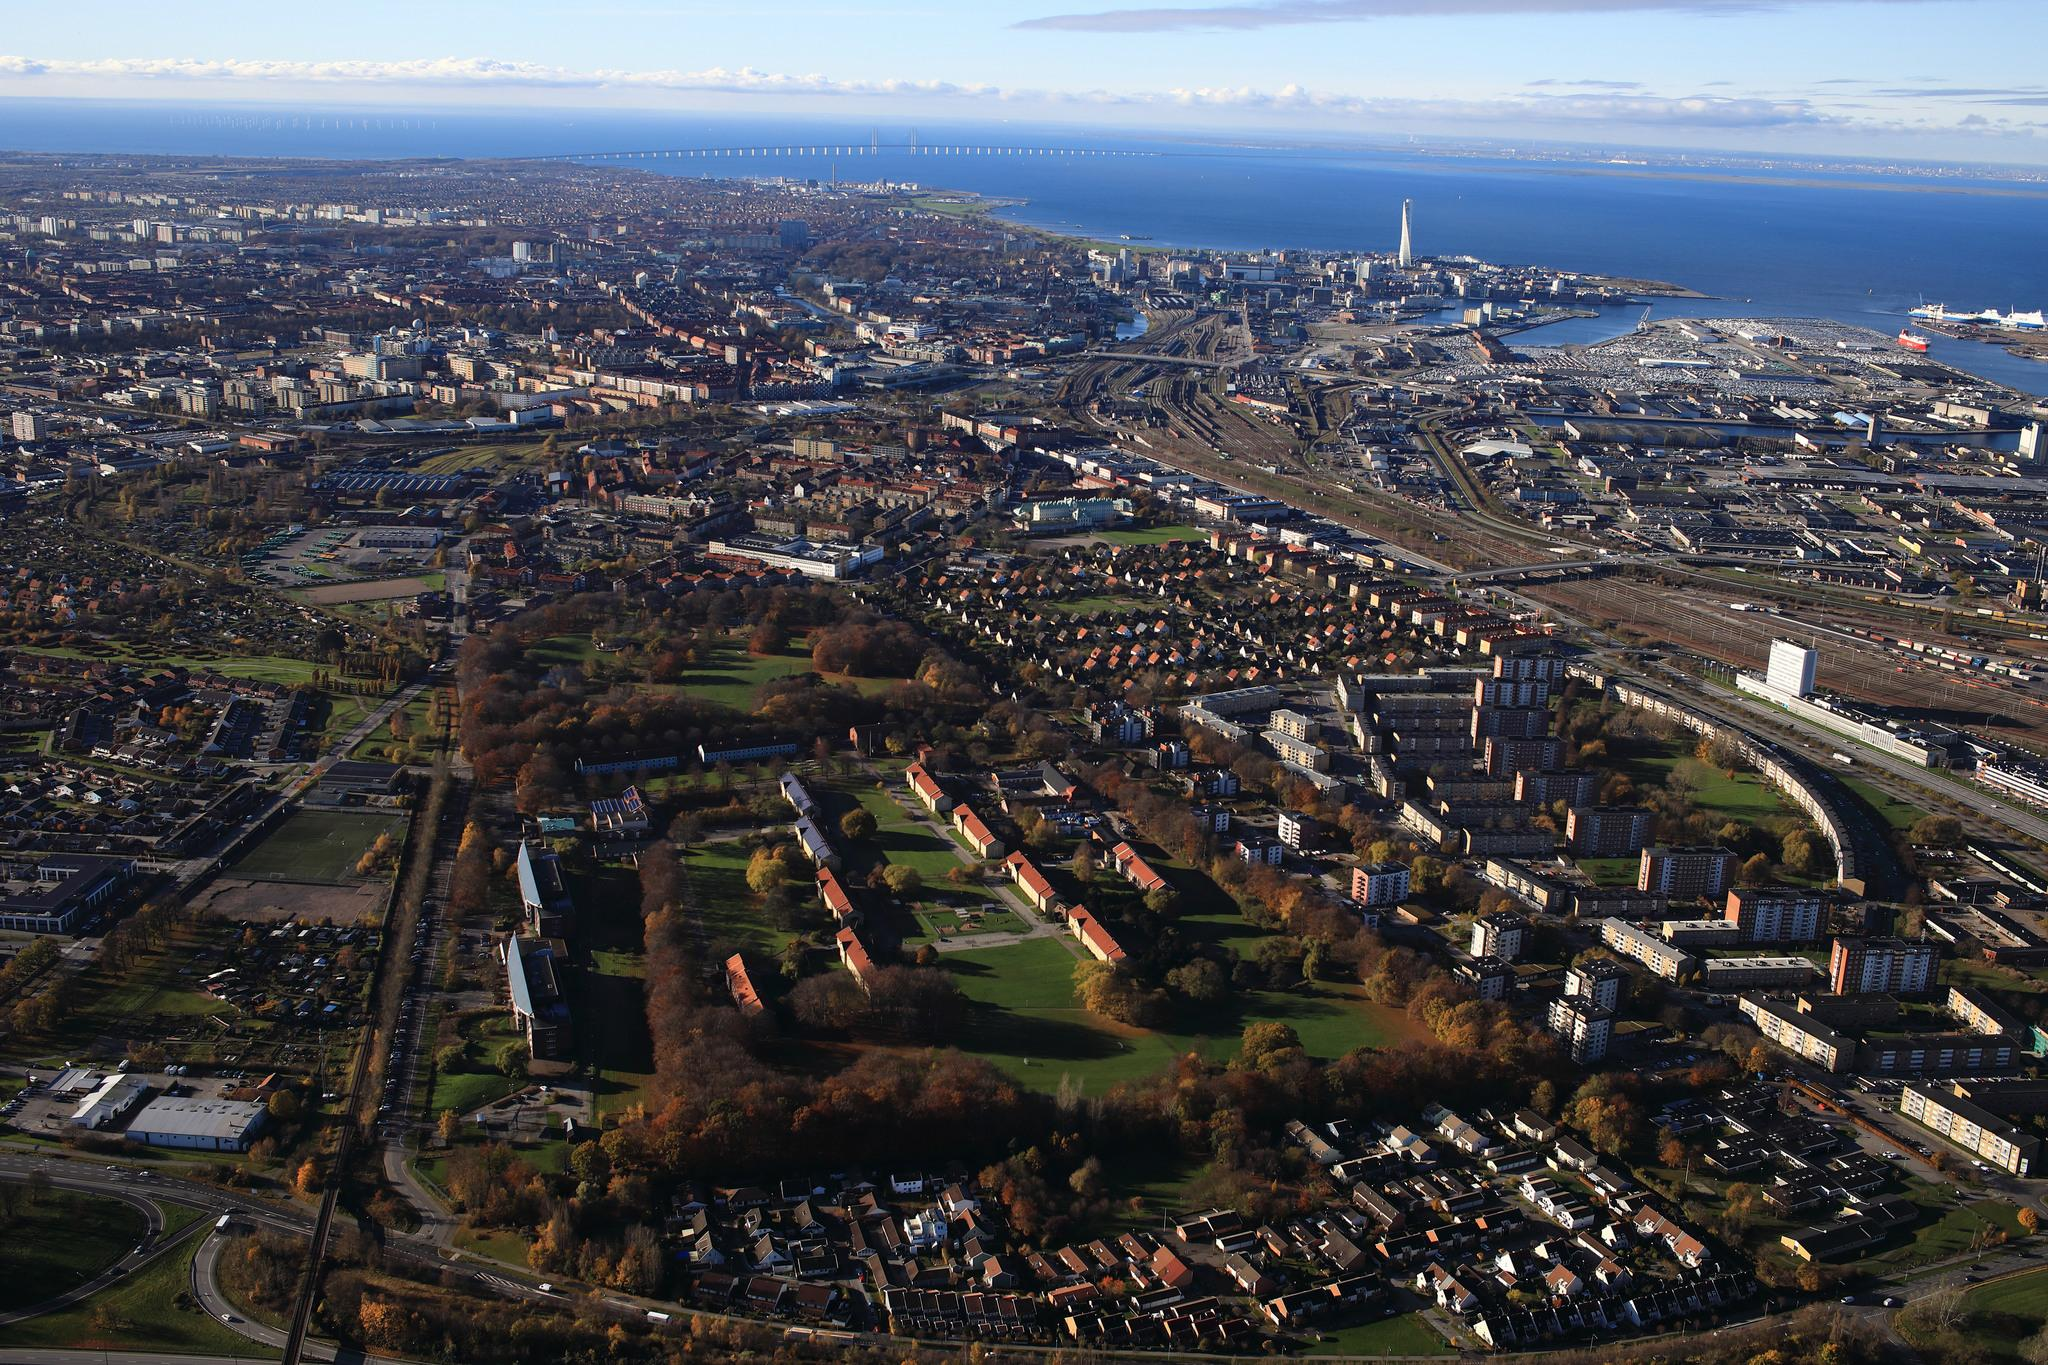 Aerial view of the city Malmö, with Sege Park in the middle.